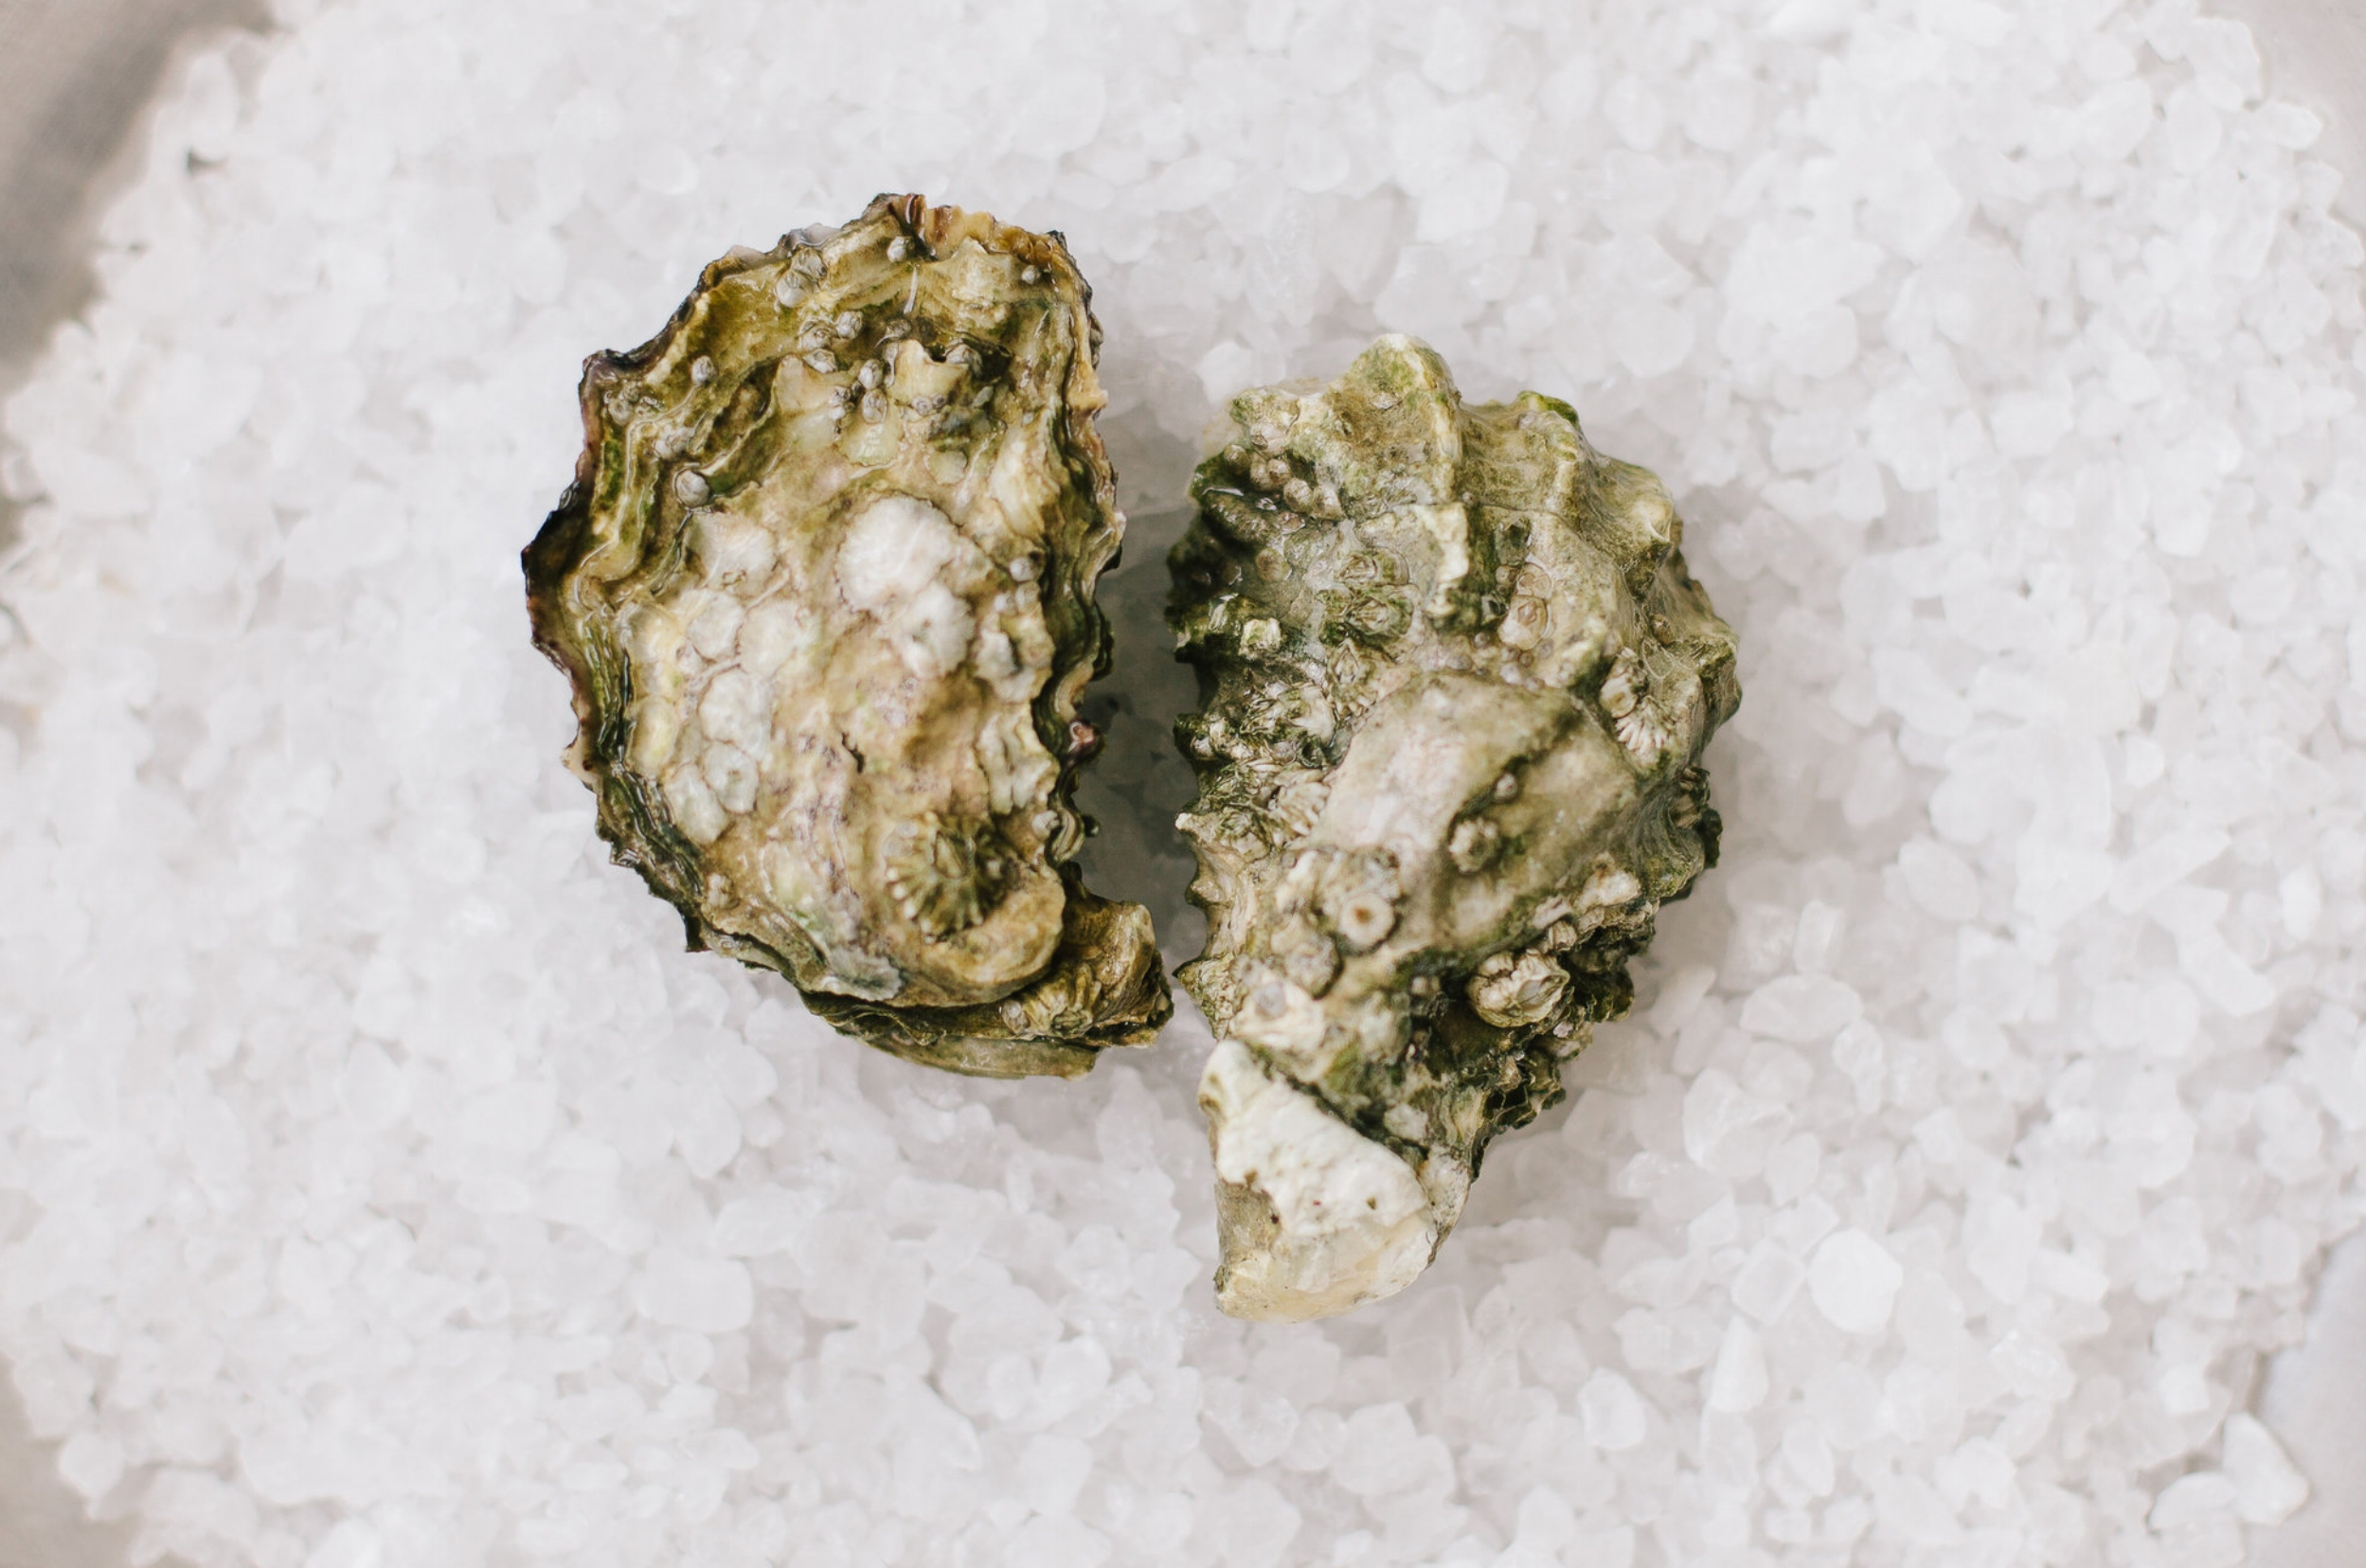 Fanny Bay - Origin: British ColumbiaFlavor Profile: Sweet and salty, slight metallic taste, with a distinct cucumber finish.